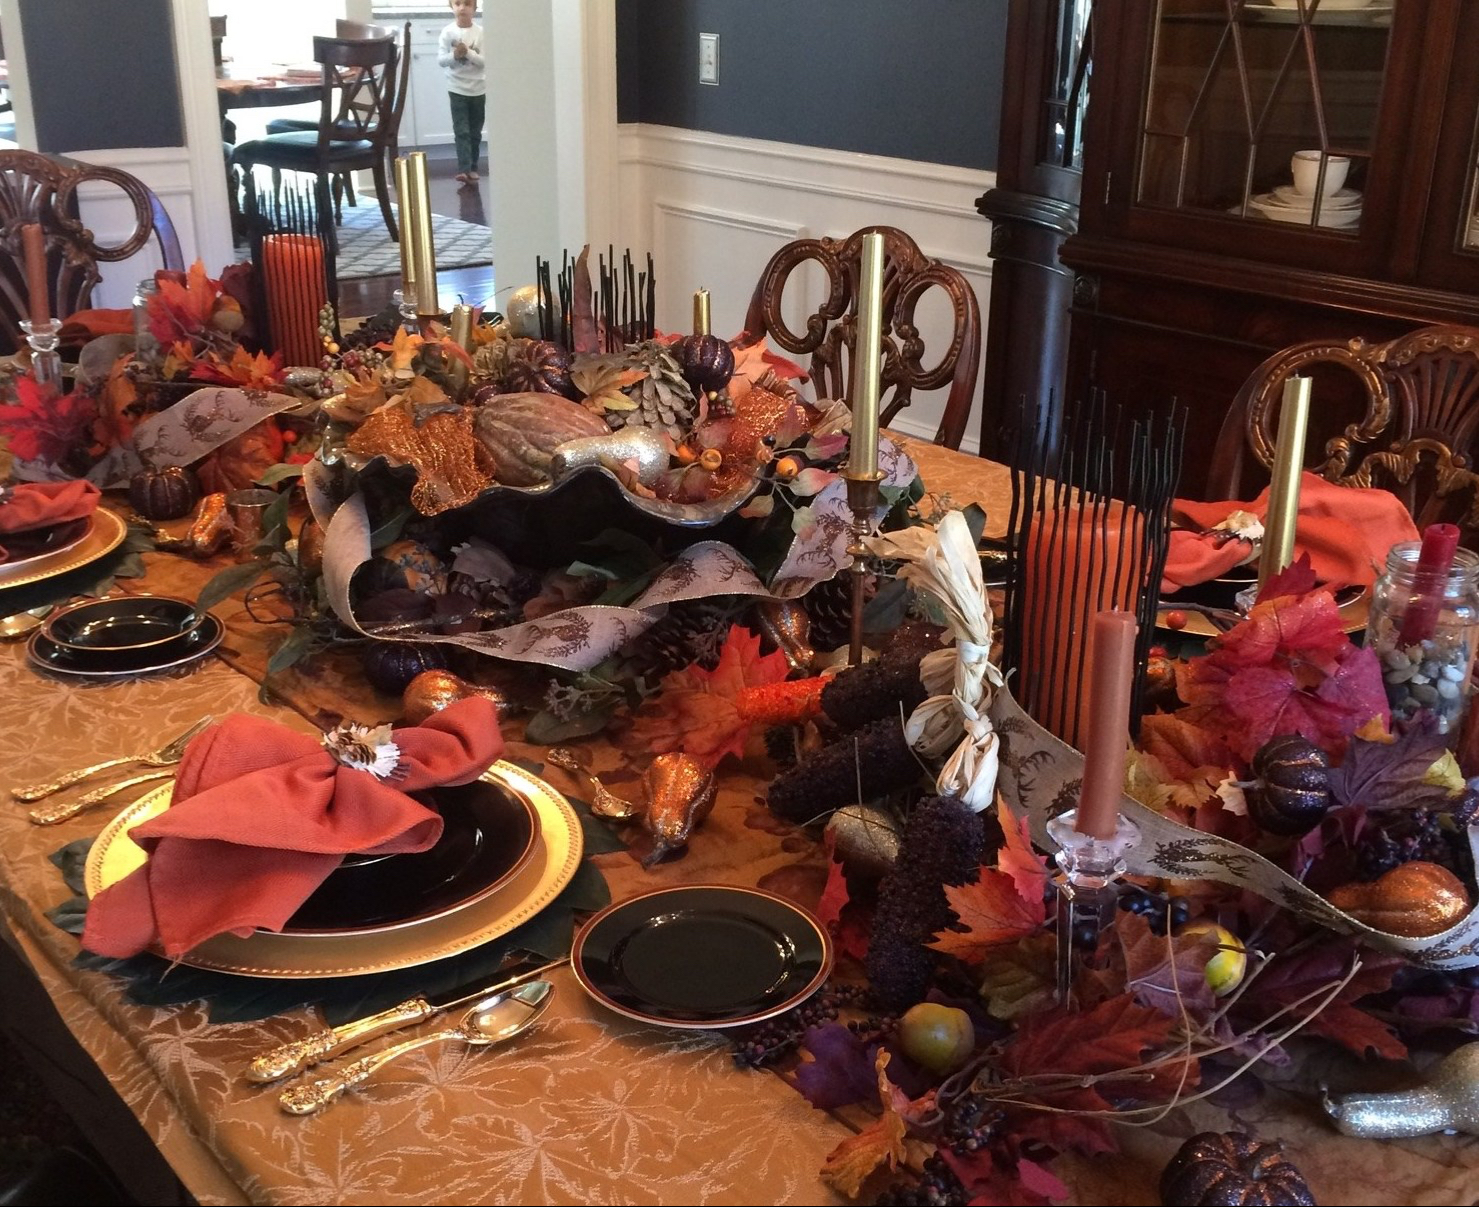 Last Years Thanksgiving Table with the classic gold, orange, red and brown.